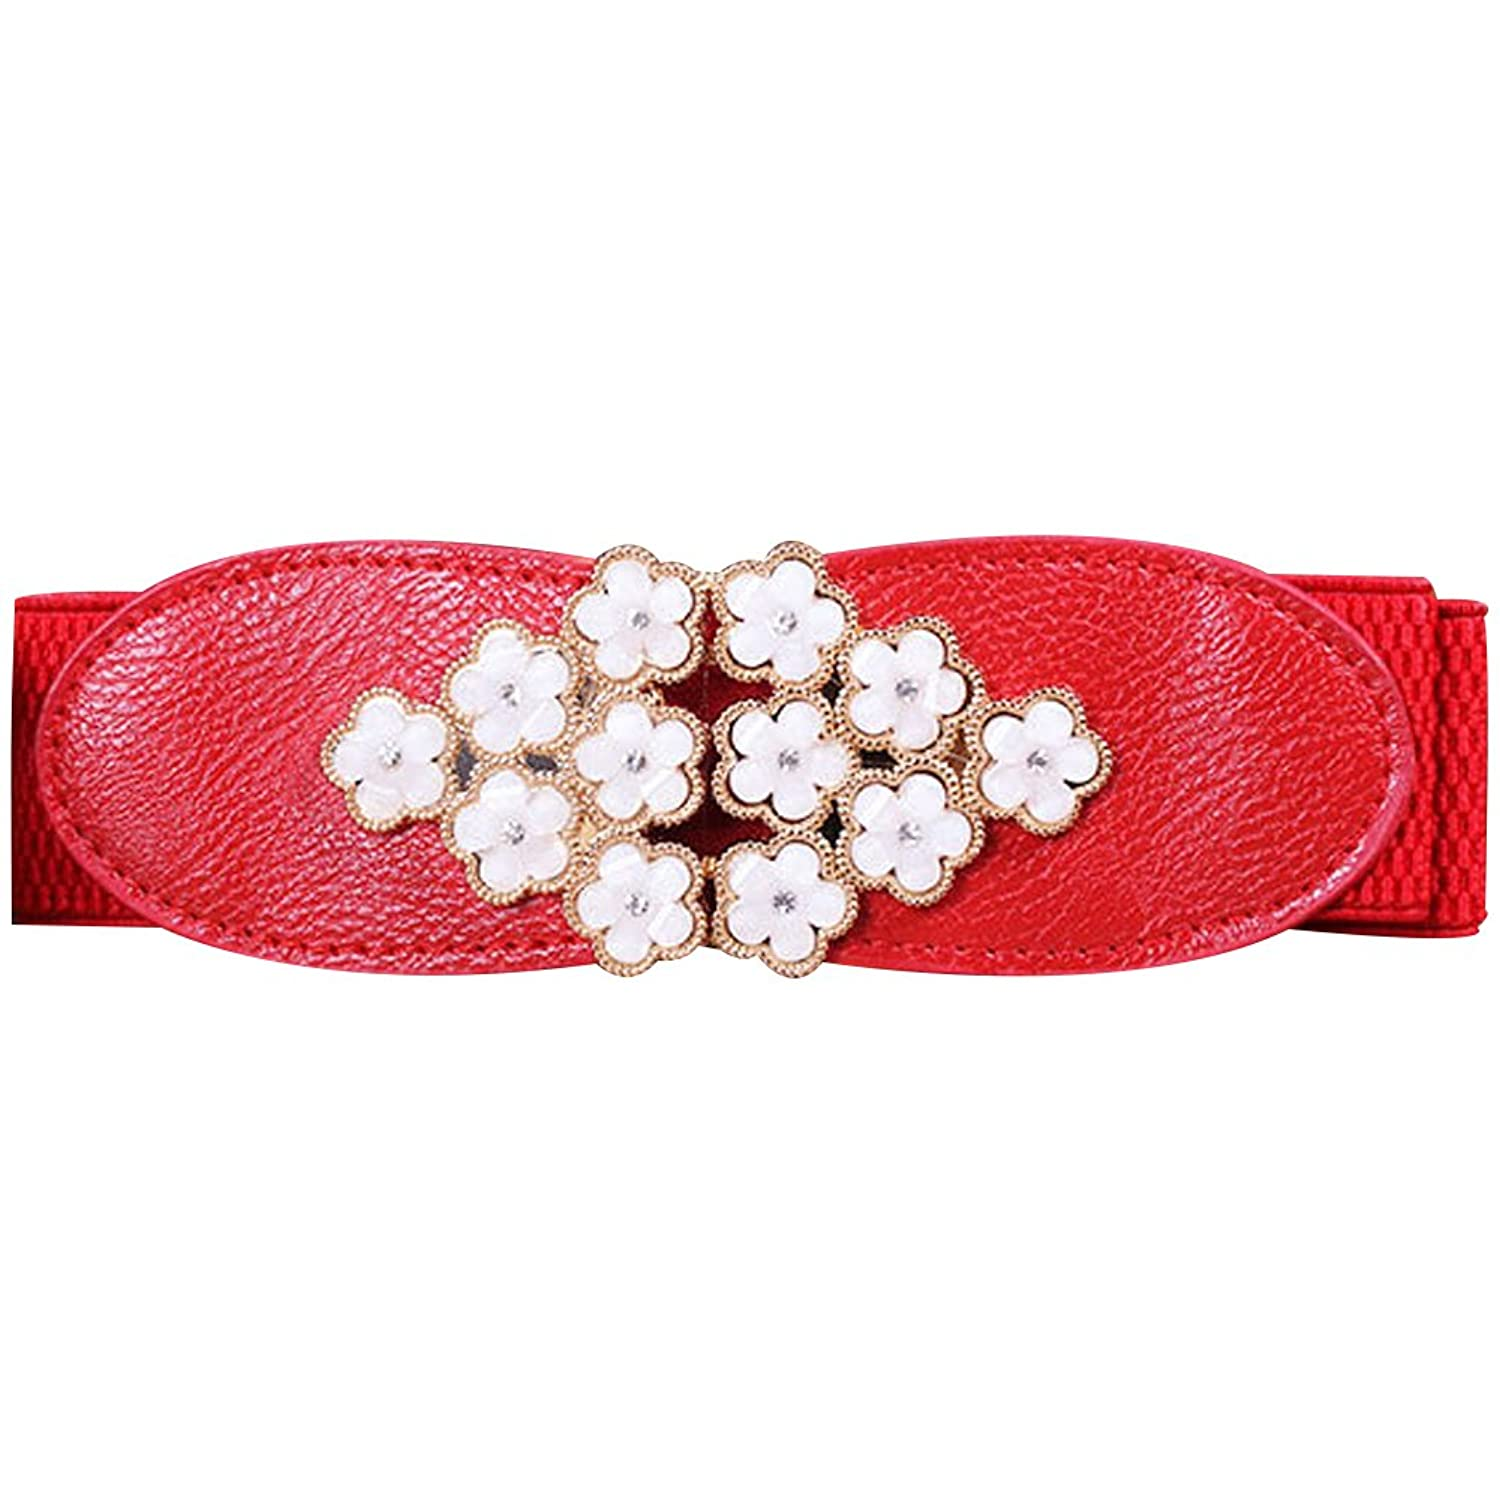 Deercon Women Flowers Buckle Elastic Waist Belt Girdle Cummerbund Waistband